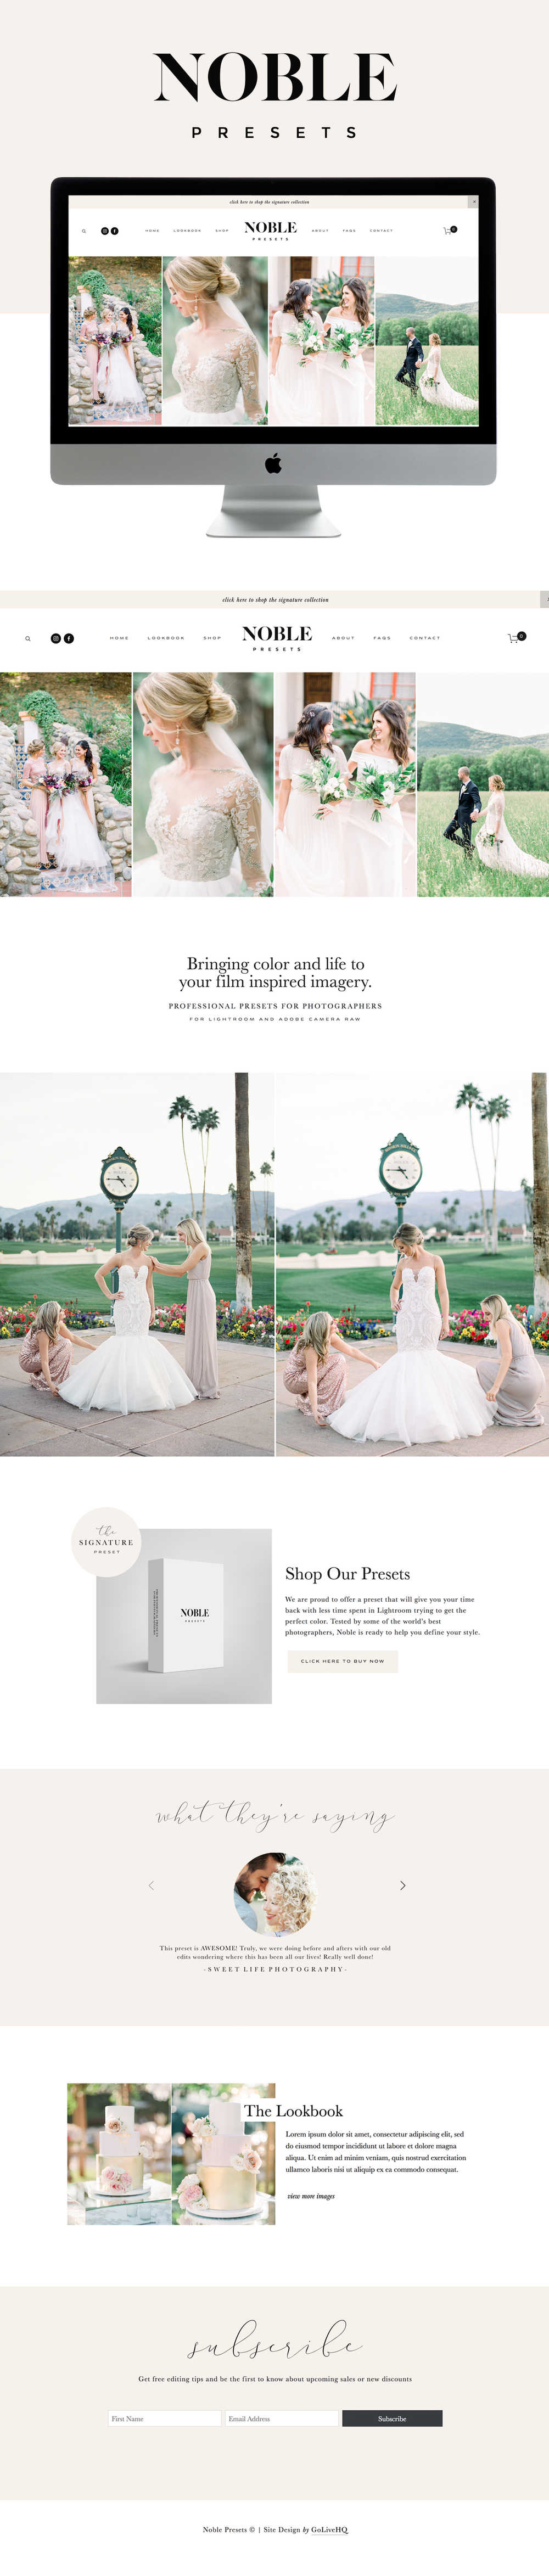 clean+modern+pretty+website+for+photography+presets+by+Go+Live+Hq.png